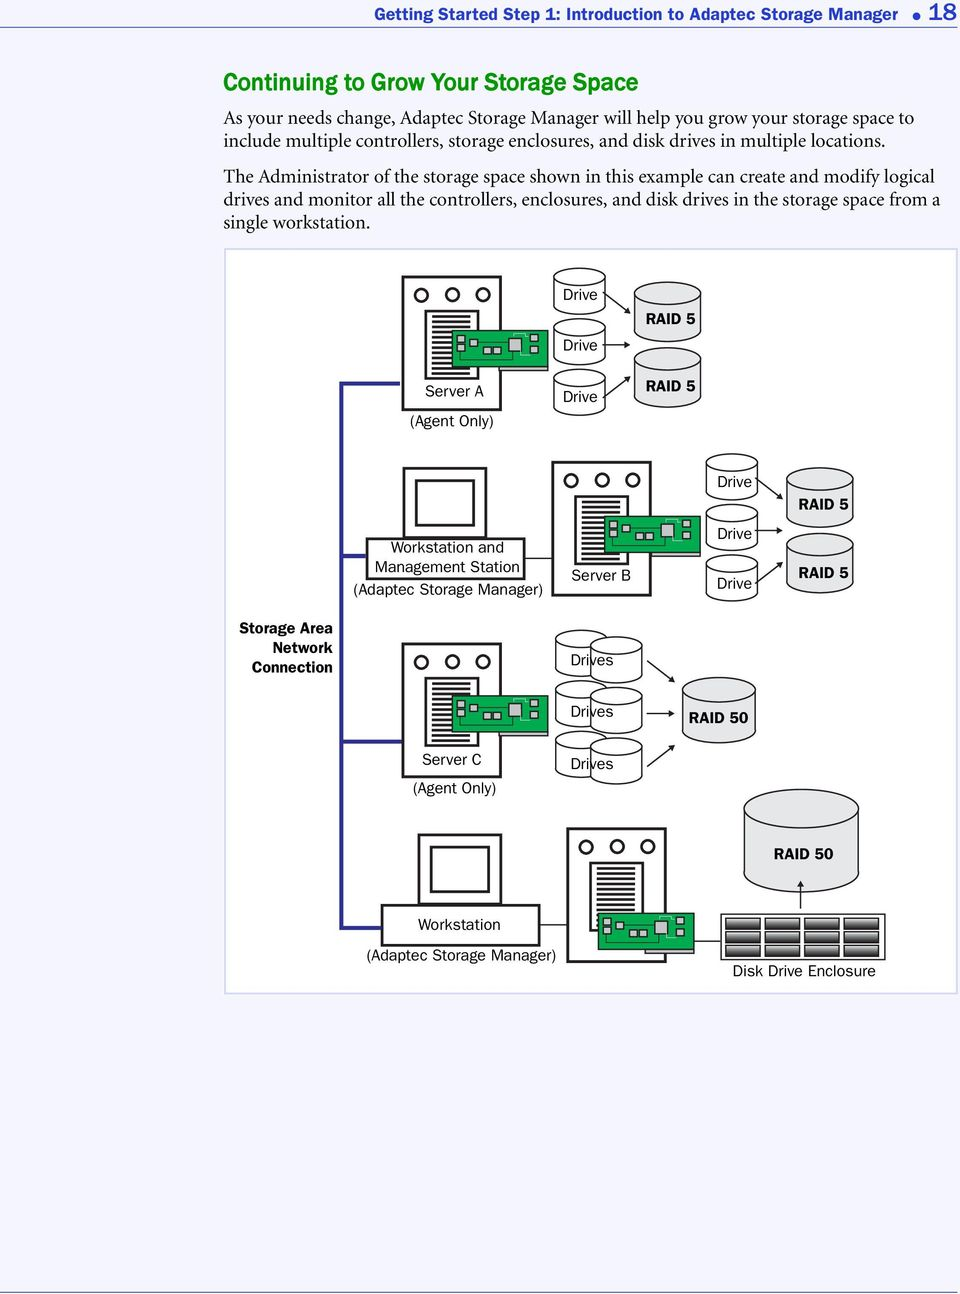 The Administrator of the storage space shown in this example can create and modify logical drives and monitor all the controllers, enclosures, and disk drives in the storage space from a single